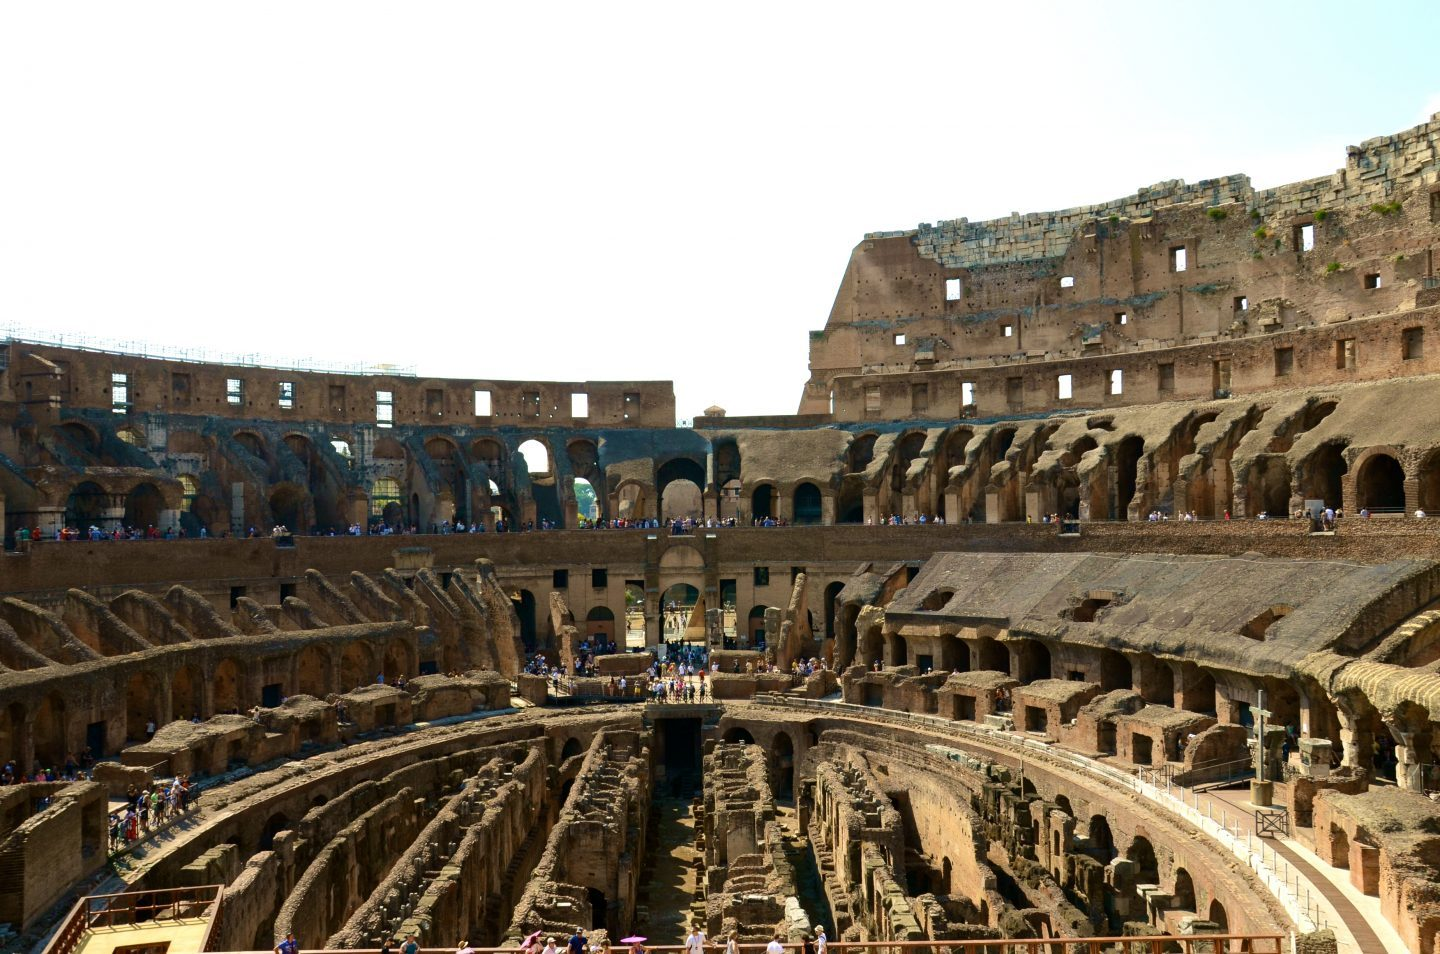 Exploring the Colosseum in Rome.